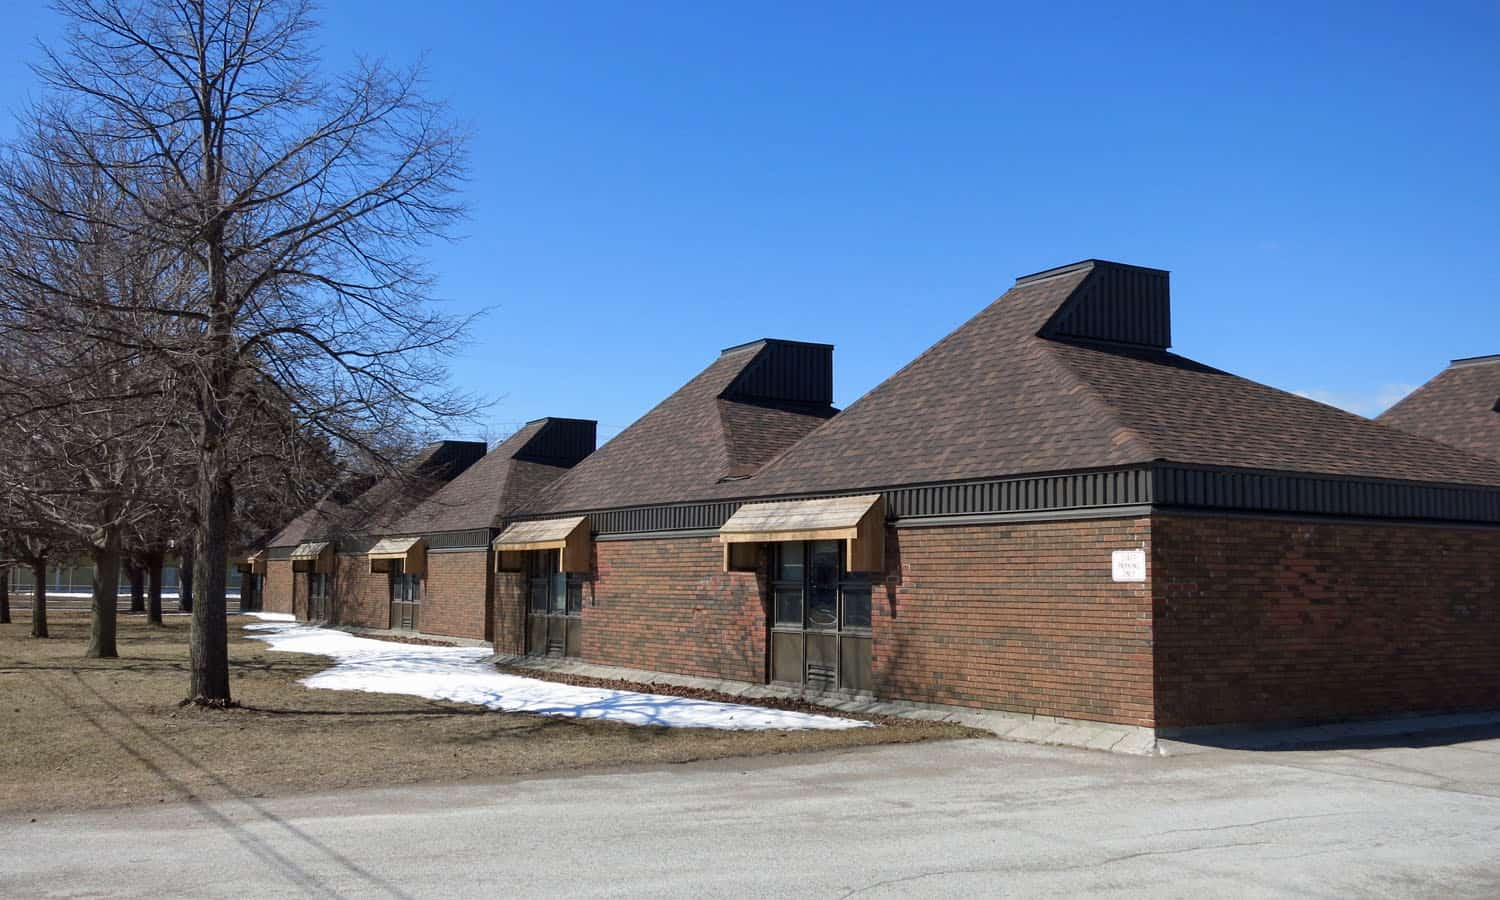 The south elevation with its rhythm of classrooms featuring pyramidal roofs, light monitors (now enclosed), and brick walls